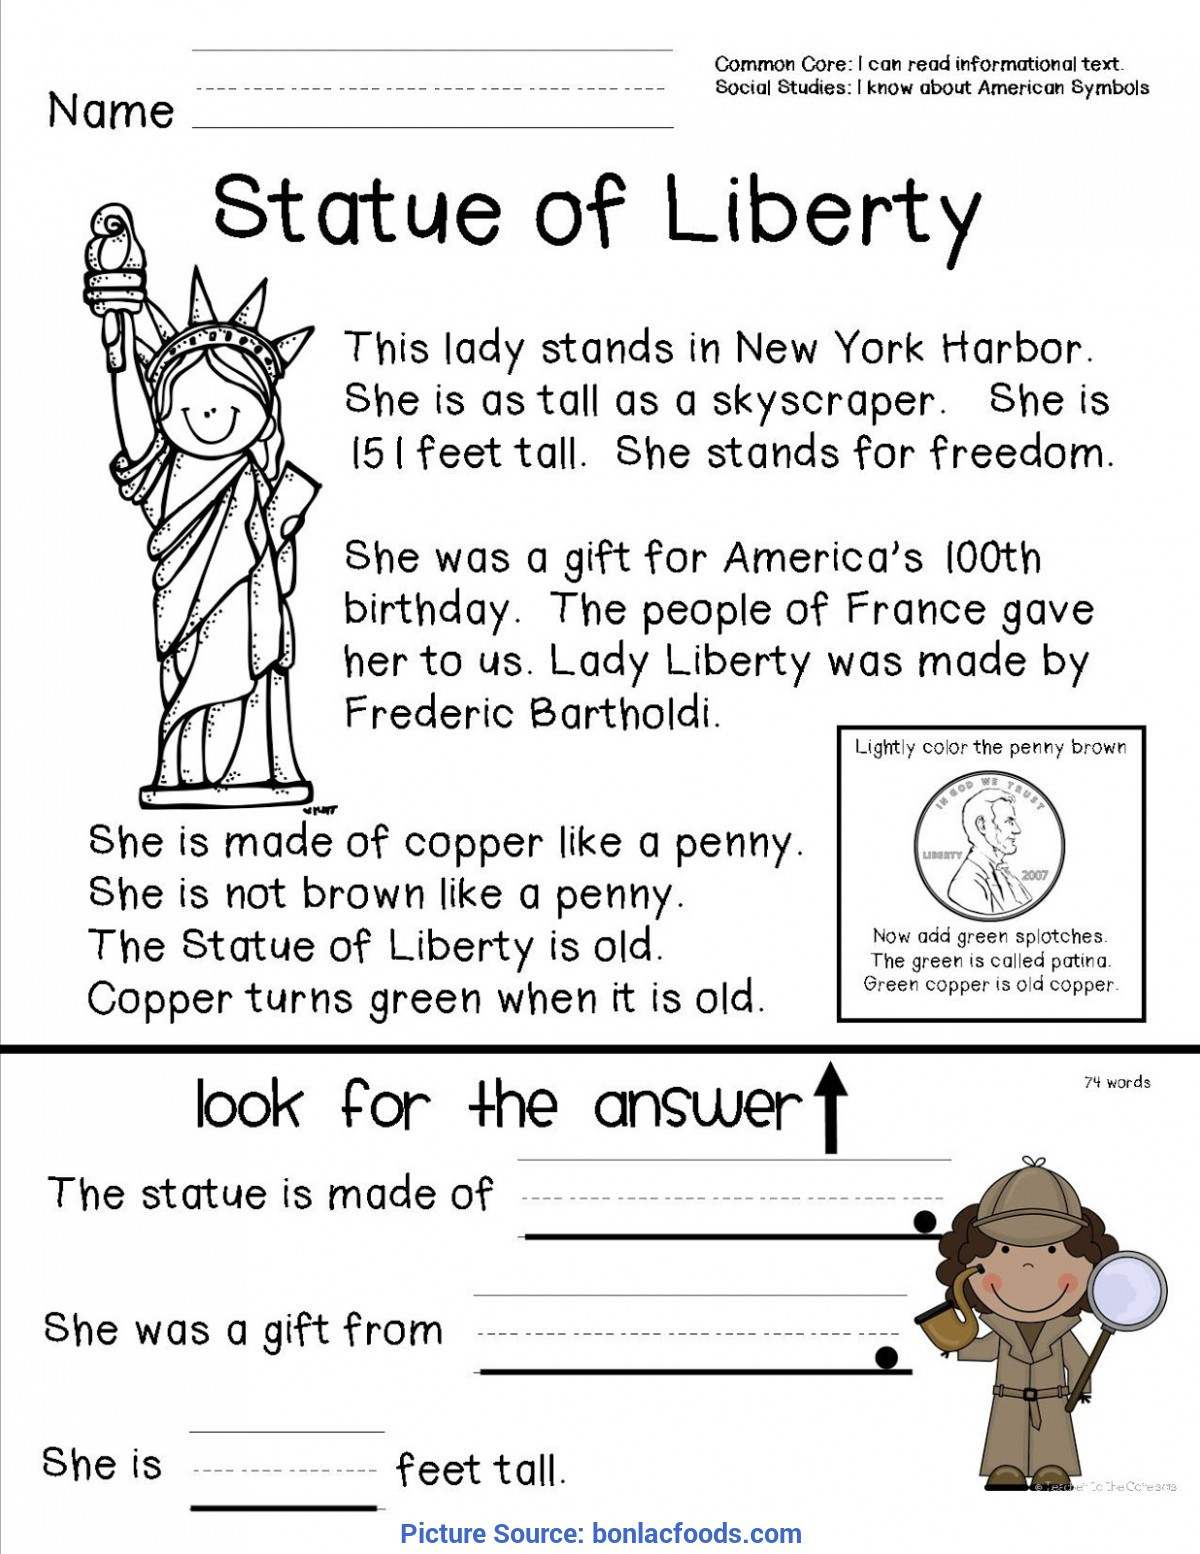 Second Grade social Studies Worksheets top History Lessons for 2nd Graders Worksheets for All